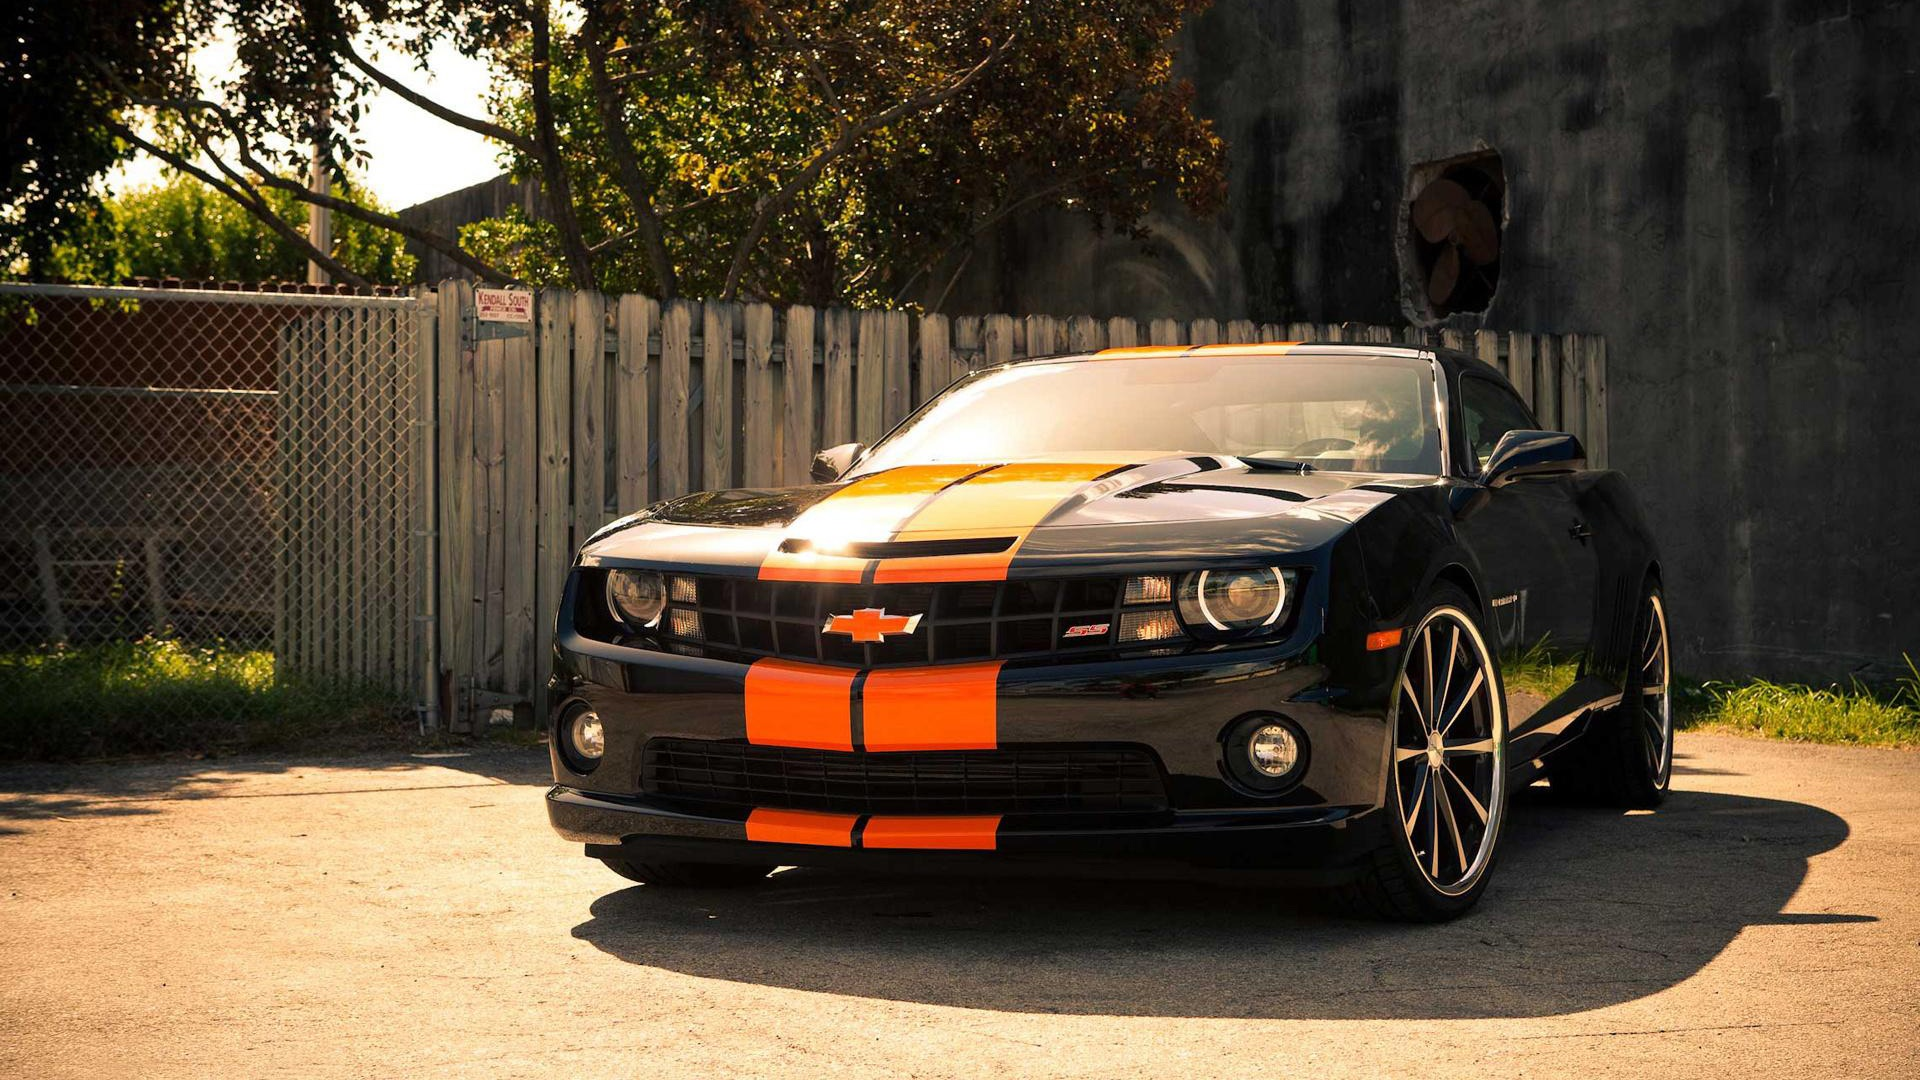 Description Chevrolet Camaro SS Car Wallpaper is a hi res Wallpaper 1920x1080